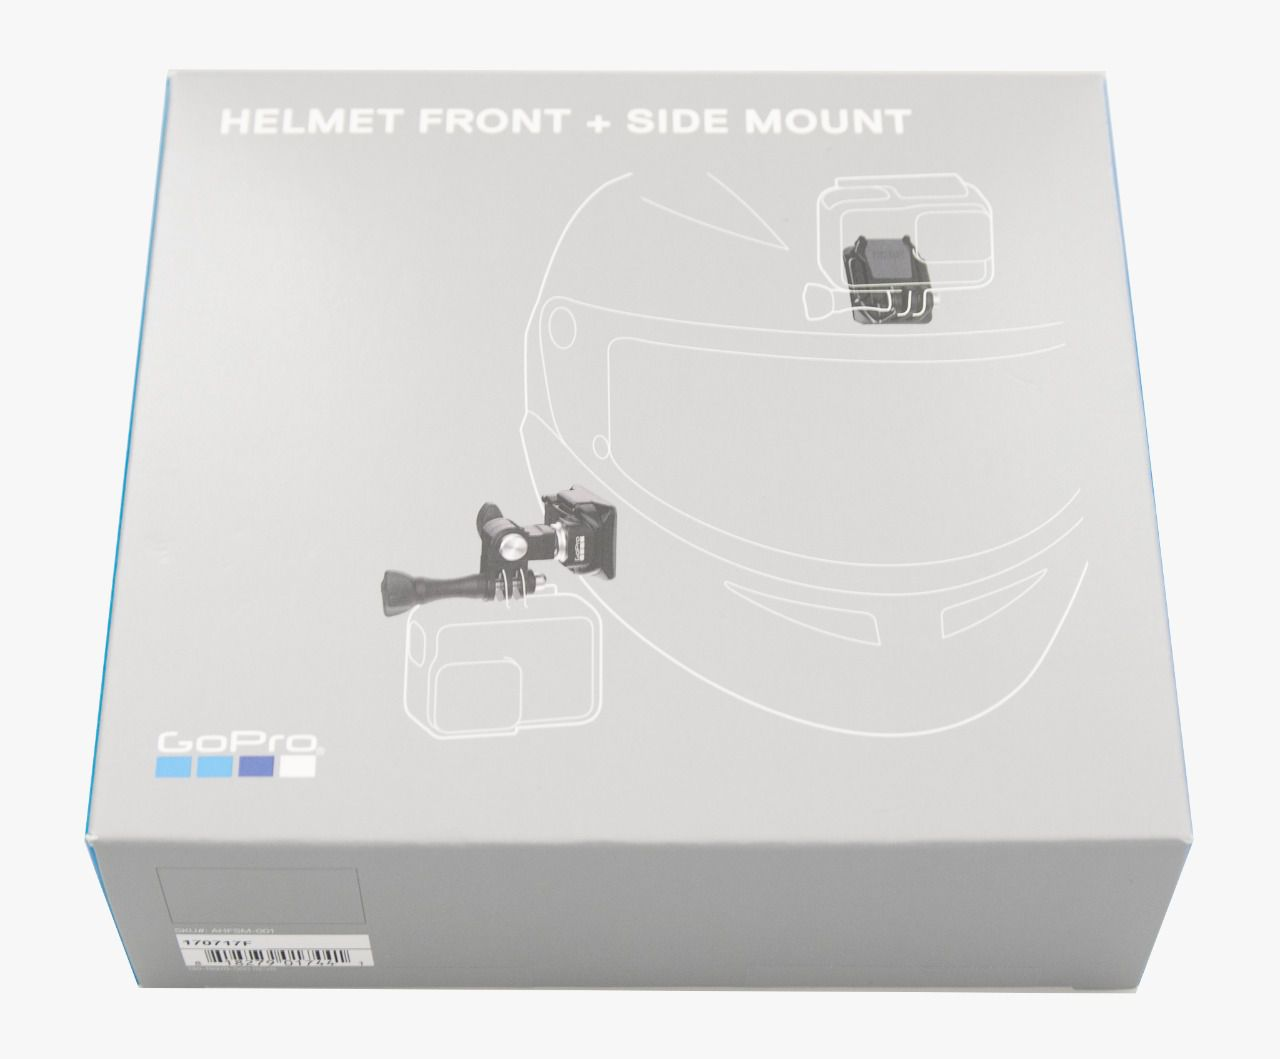 Suporte Frontal e Lateral Para Capacete Helmet Front + Side Mount GoPro AHFSM-001